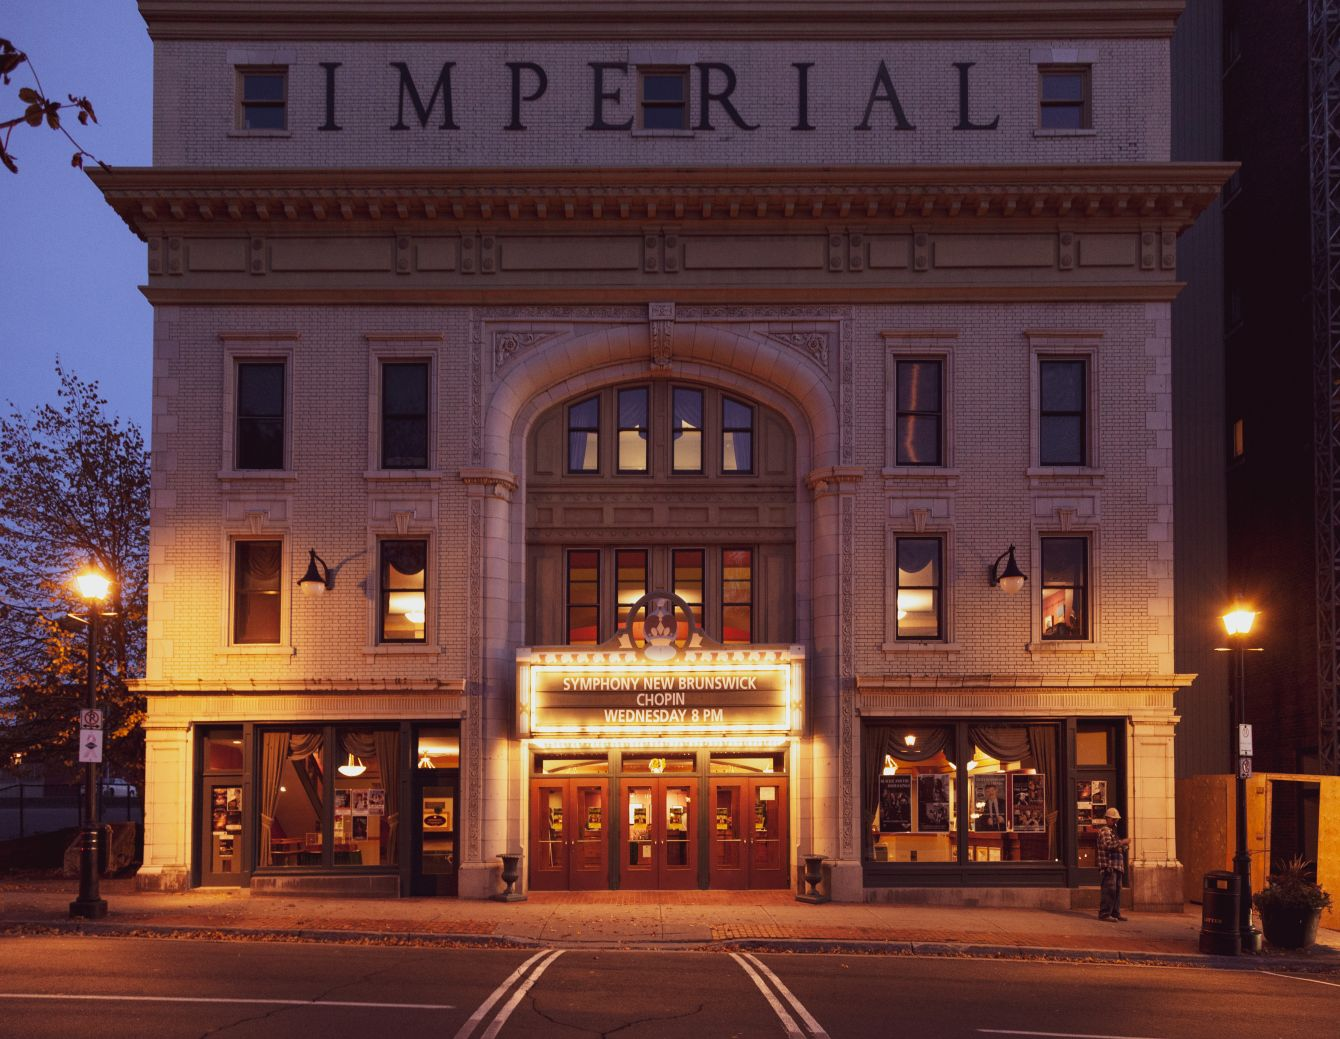 Click thumbnail to see details about photo - Imperial Theatre Front at Dusk Medium Format Photograph